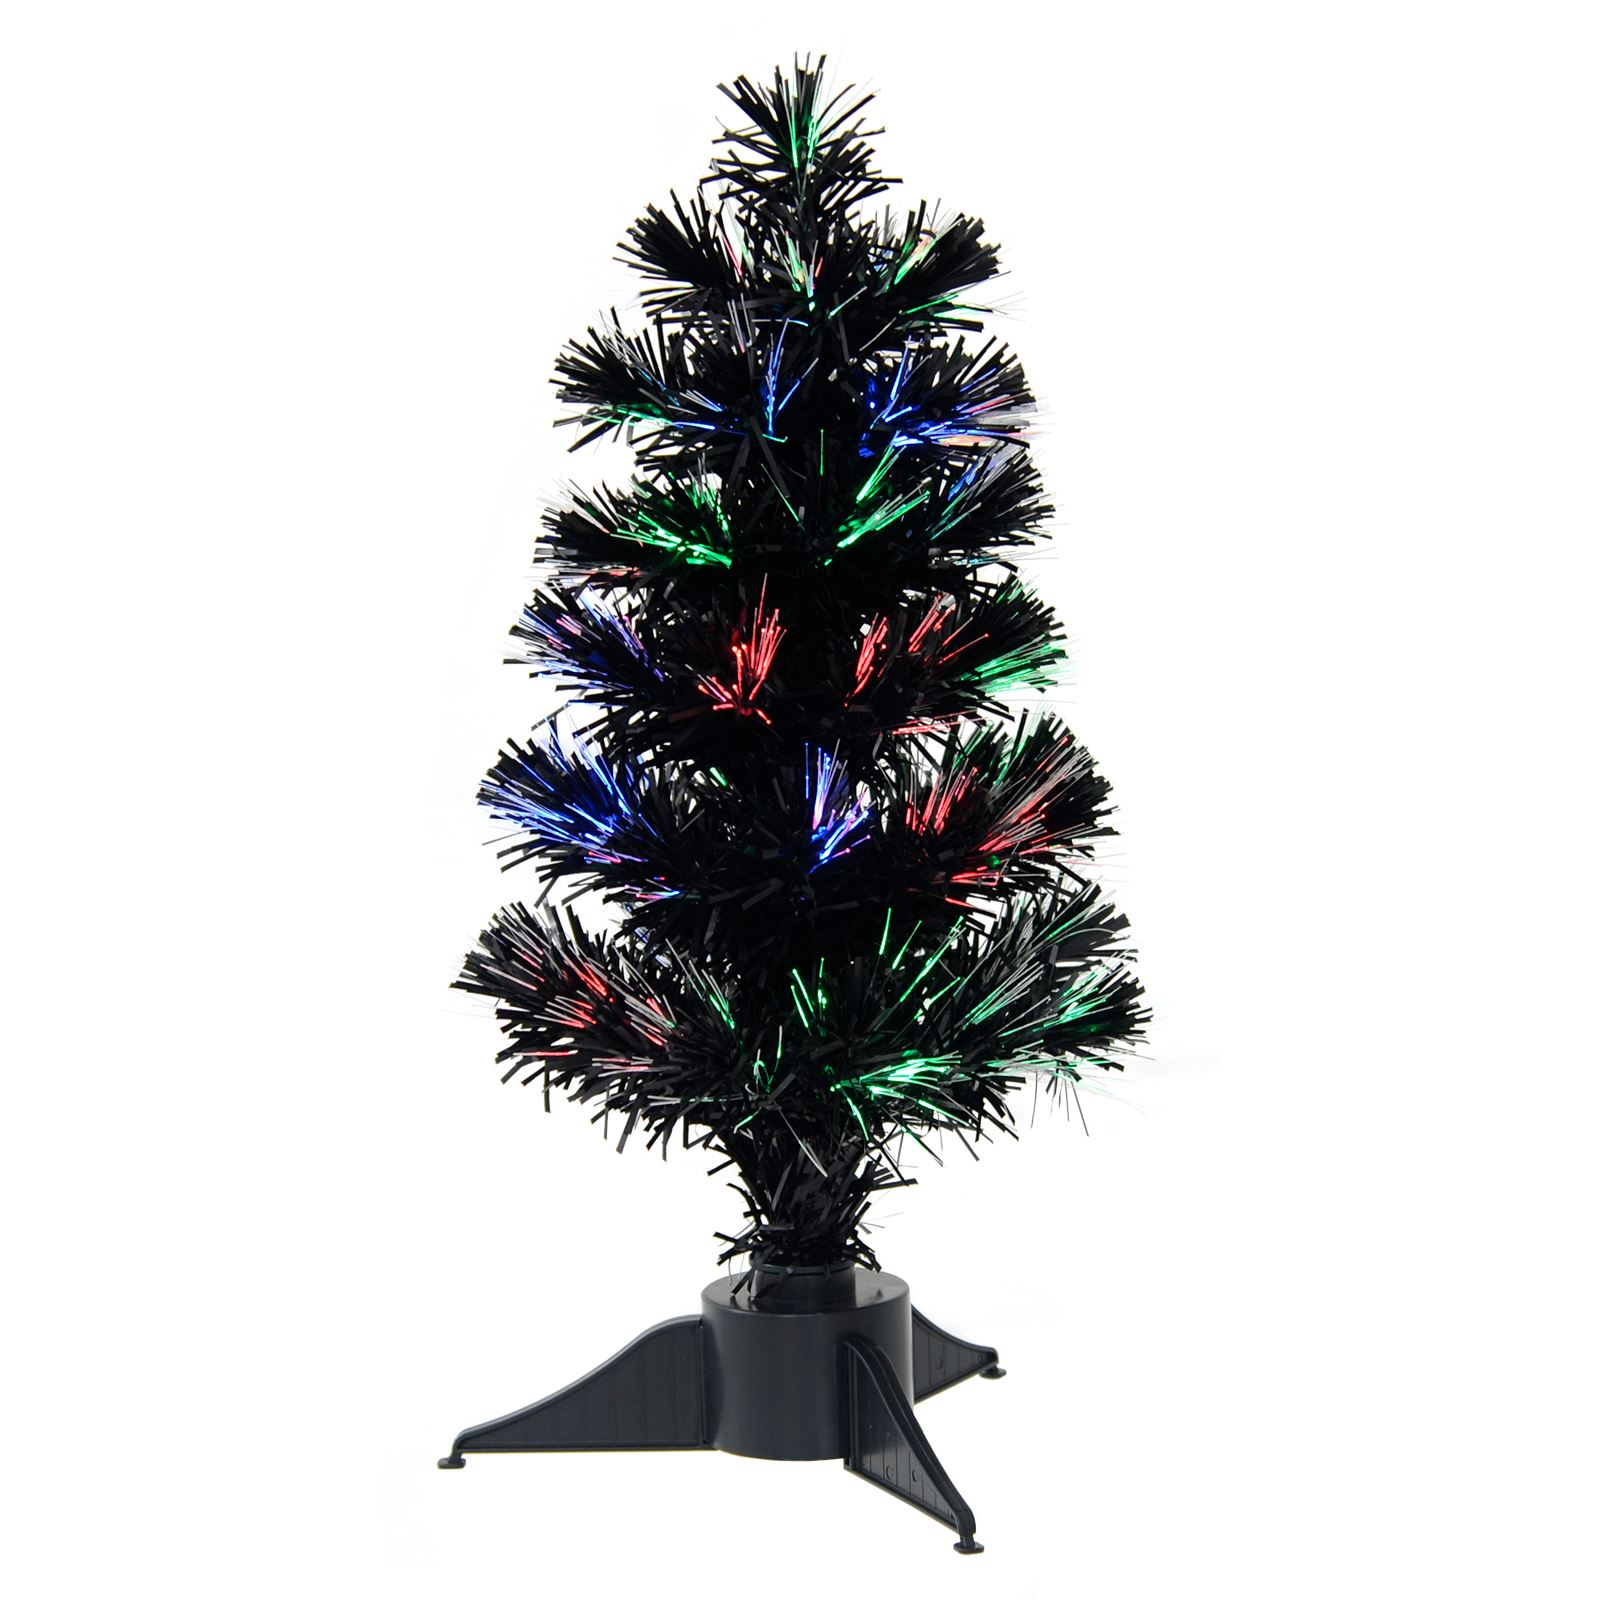 Details About 45cm Mini Desktop Black Fibre Optic Xmas Christmas Tree Usb Battery Powered